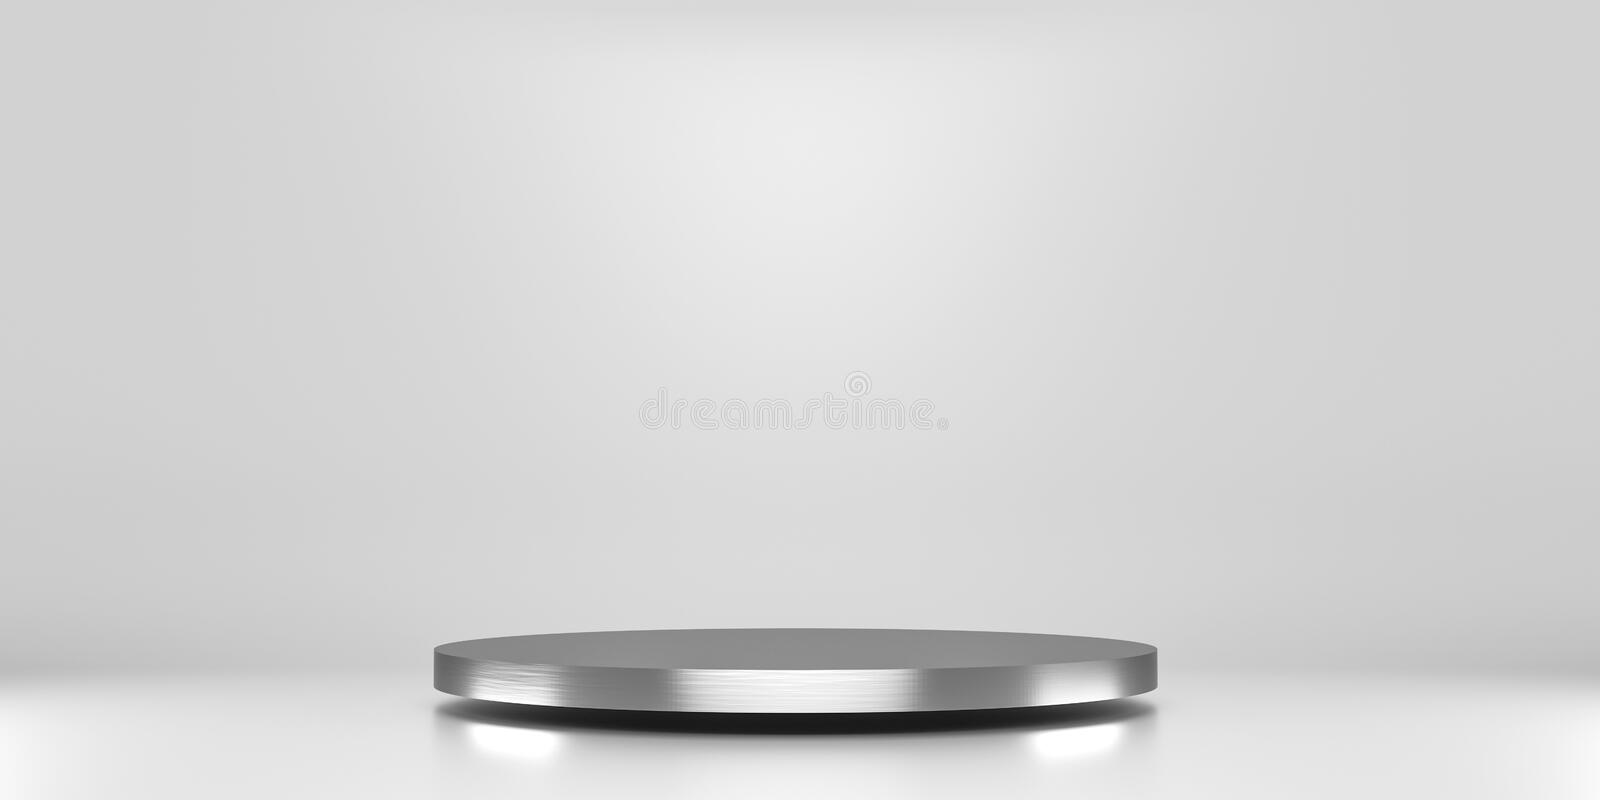 Silver pedestal of platform display with luxury stand podium on white room background. Blank Exhibition or empty product shelf. 3D stock illustration